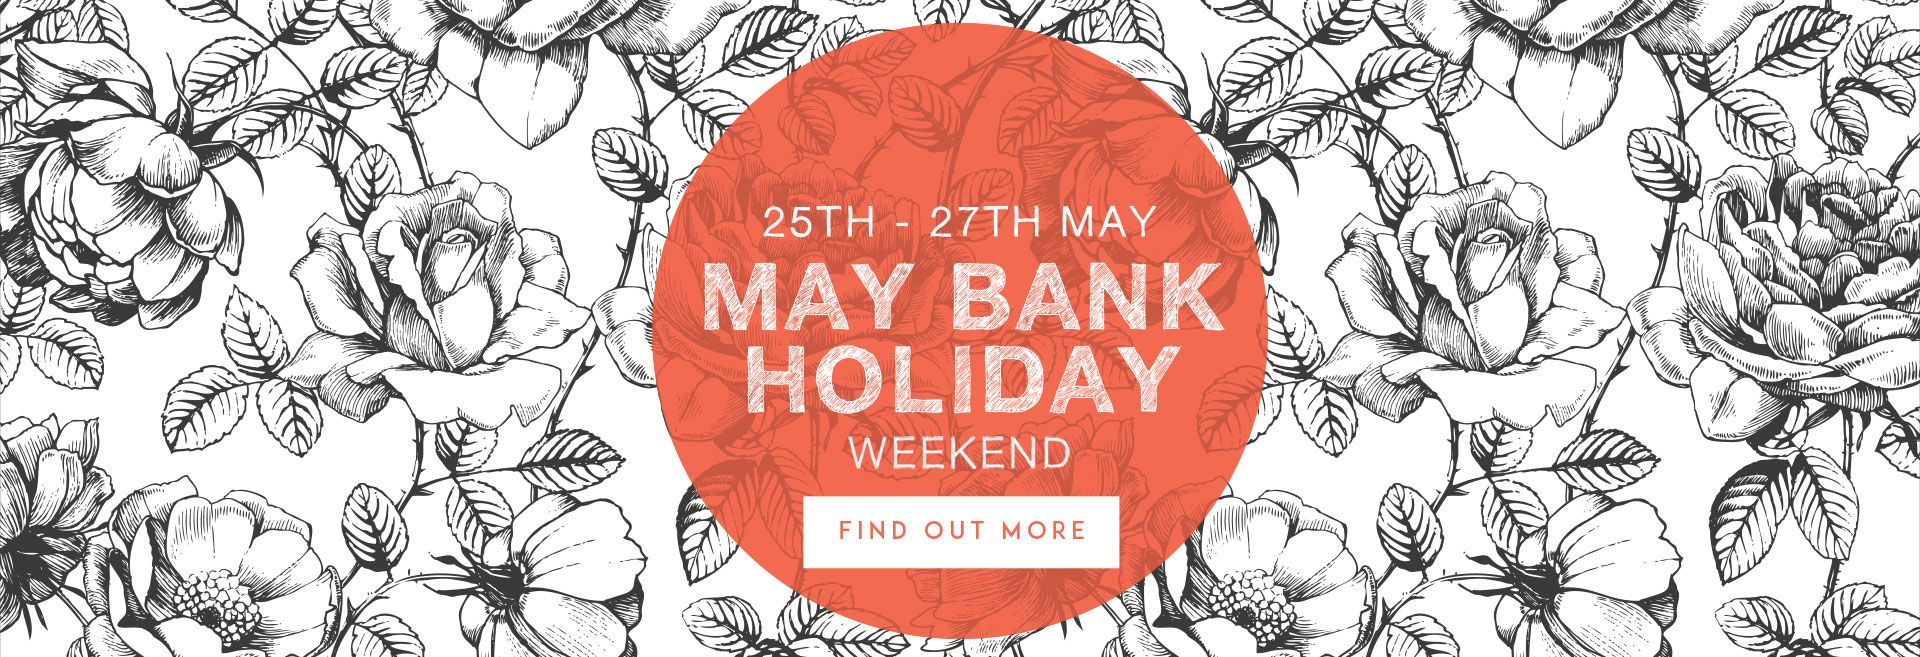 May Bank Holiday at The White Horse